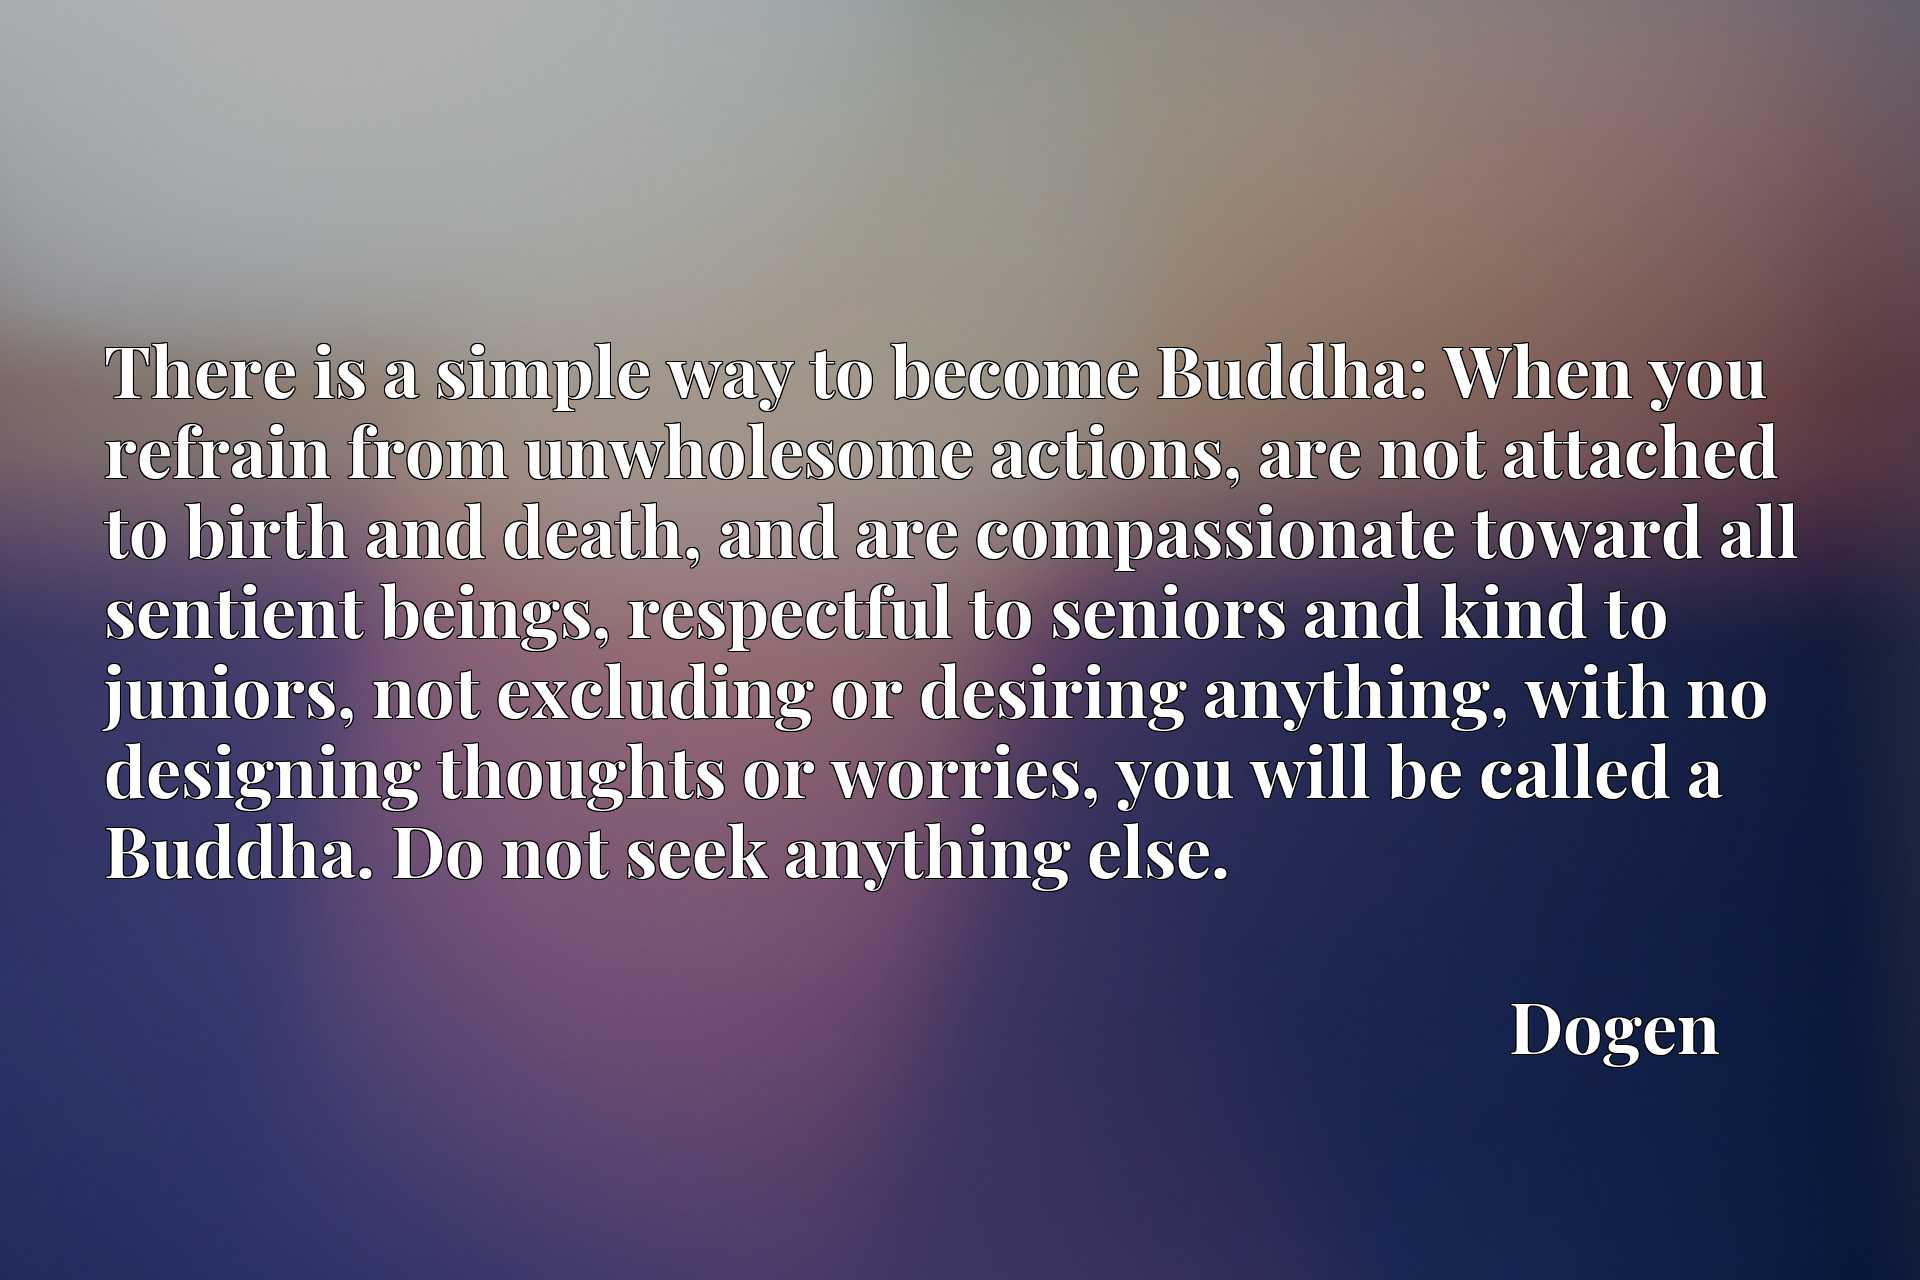 There is a simple way to become Buddha: When you refrain from unwholesome actions, are not attached to birth and death, and are compassionate toward all sentient beings, respectful to seniors and kind to juniors, not excluding or desiring anything, with no designing thoughts or worries, you will be called a Buddha. Do not seek anything else.